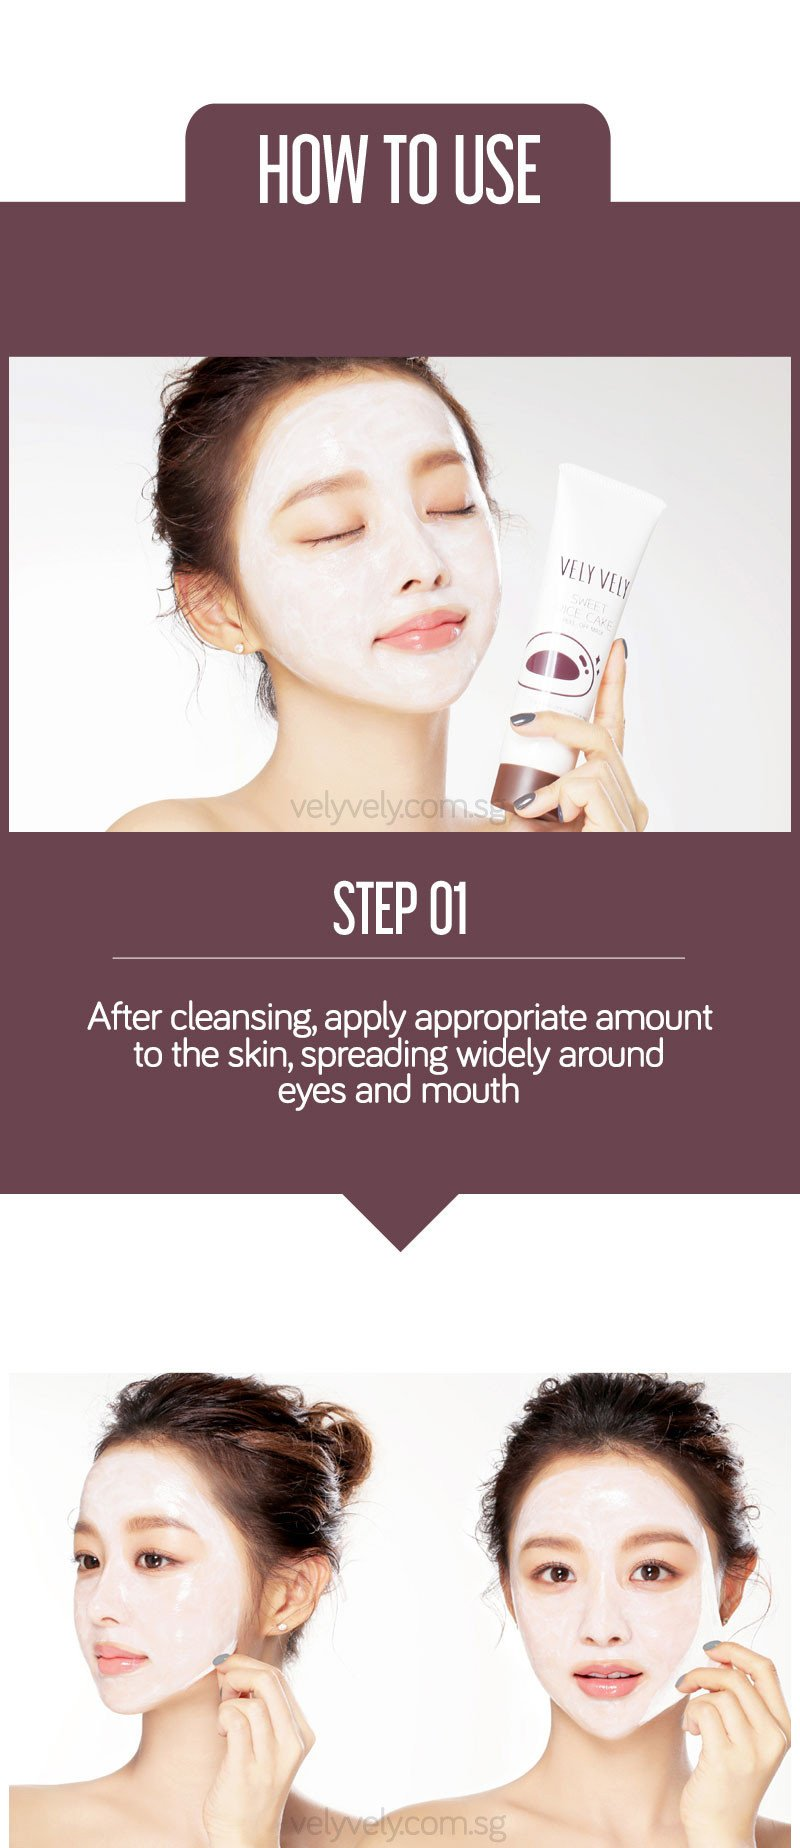 How to use Korea's Cosmetic Brand Vely Vely Sweet Rice Cake Peel-Off Mask